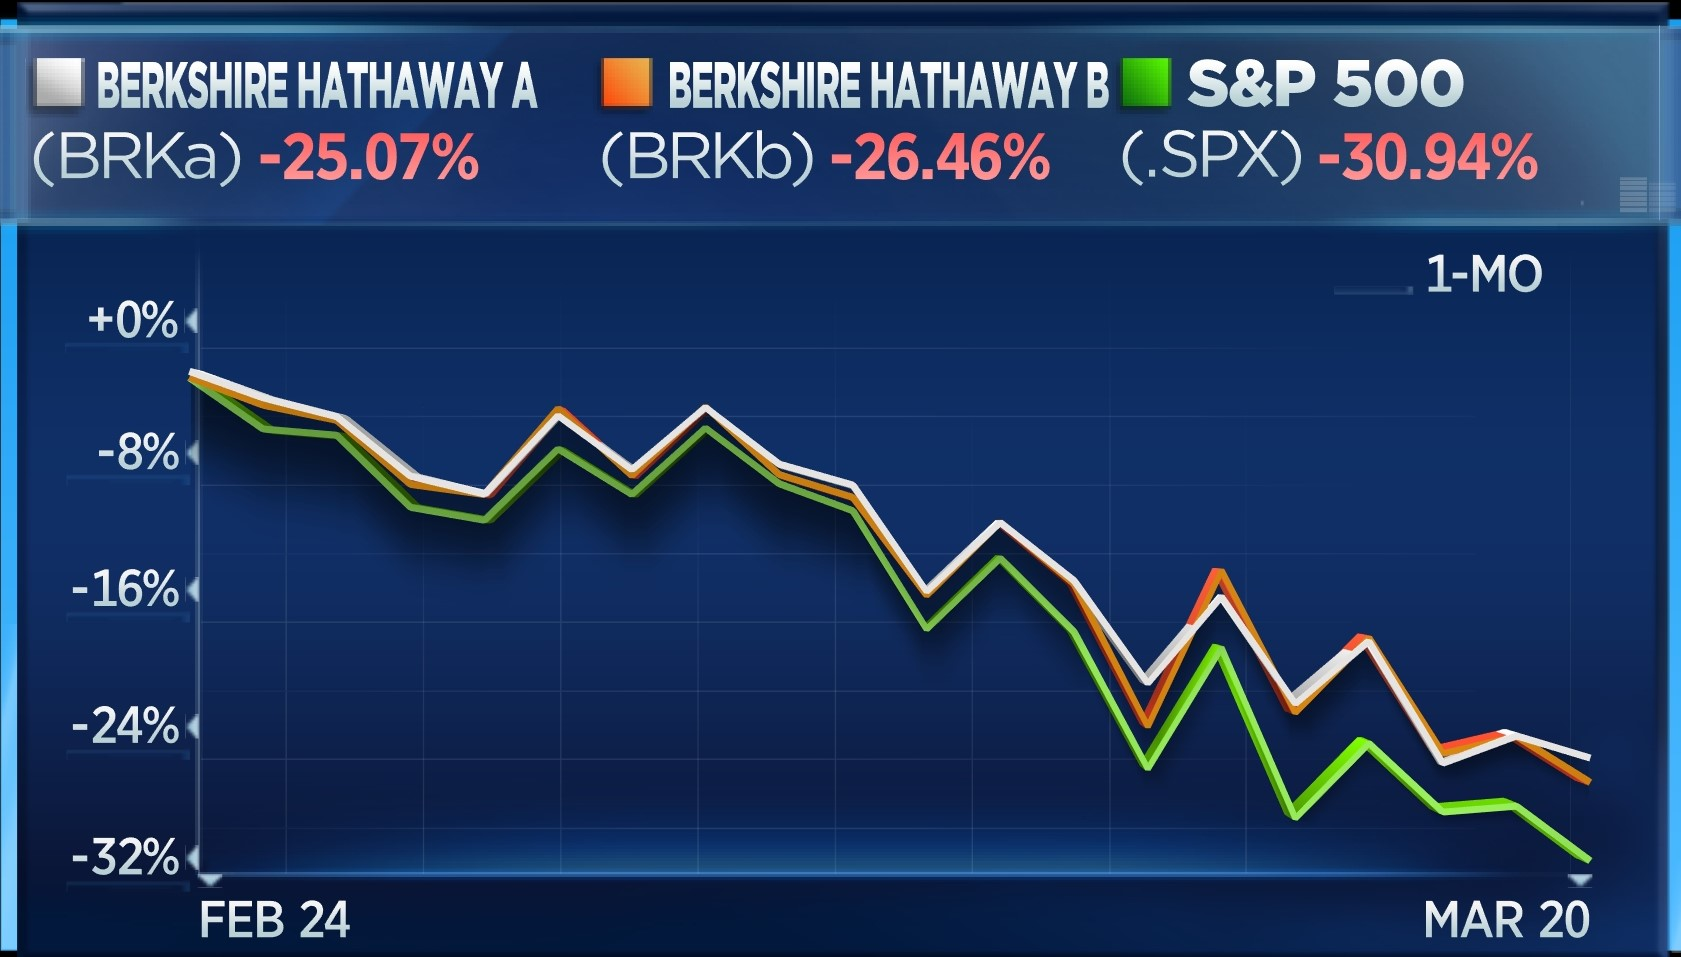 BRKA vs BRKB vs S&P - 1 month